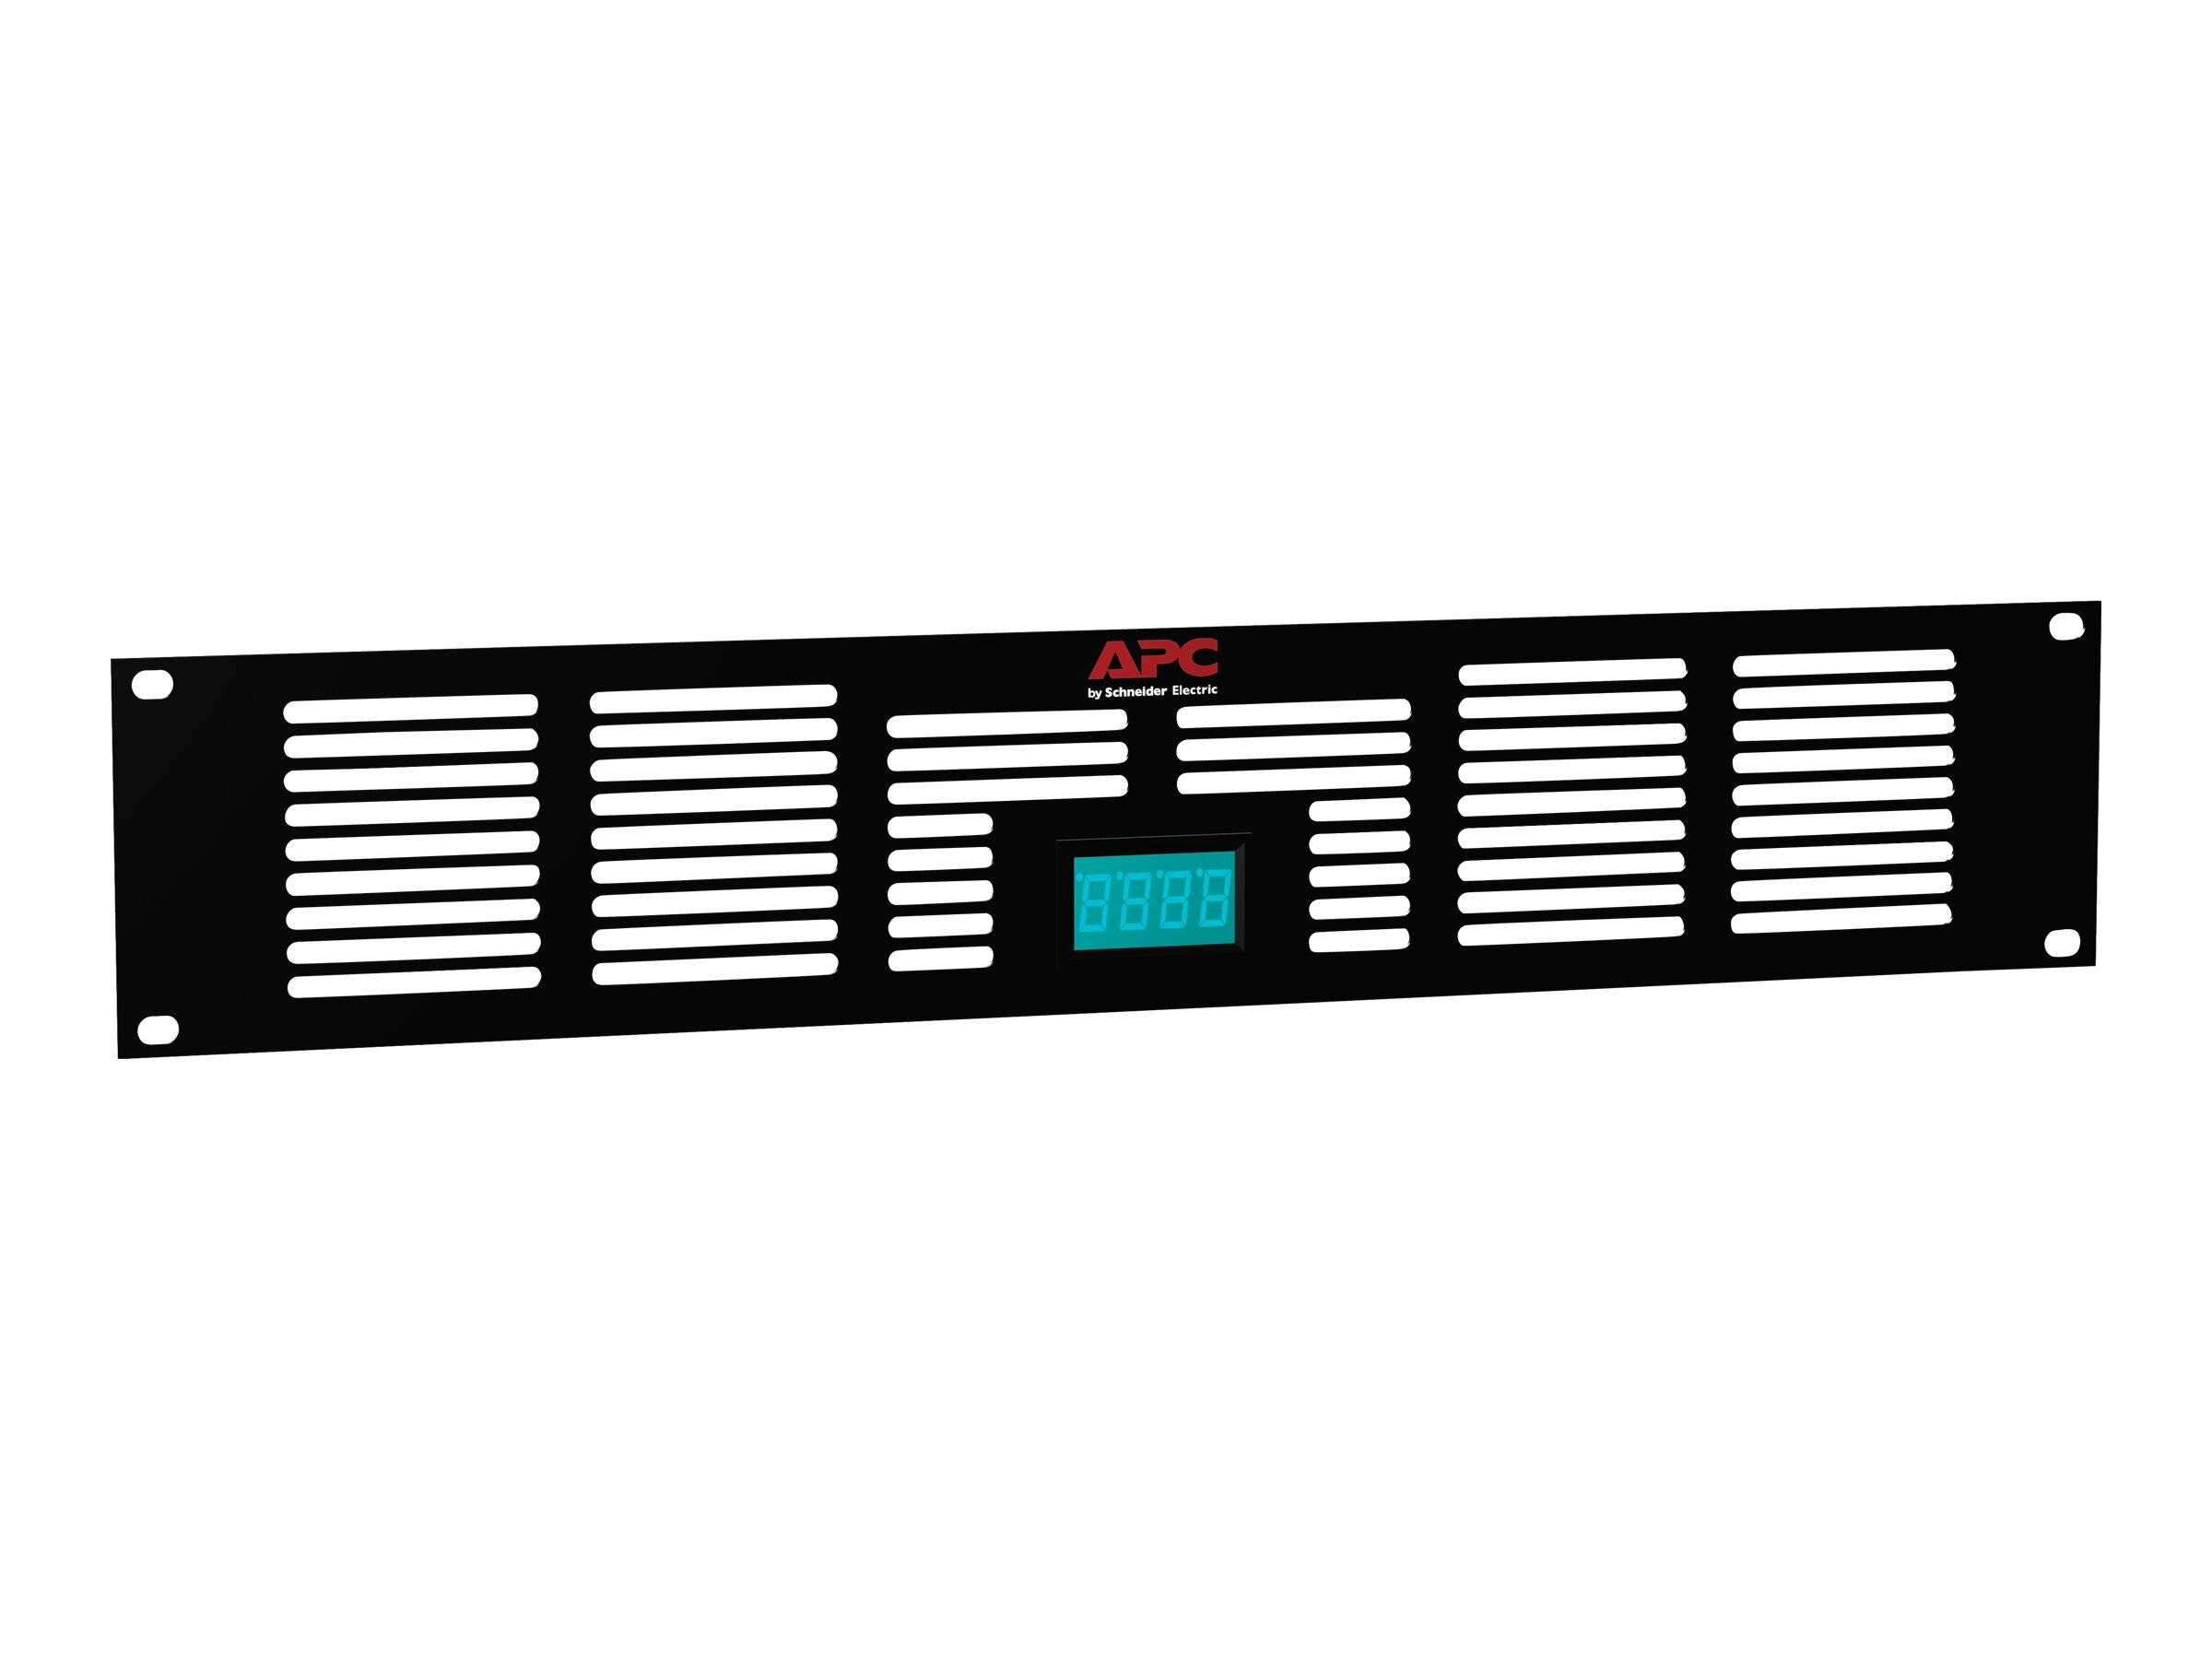 APC NetShelter AV 2U Vent Panel with Temperature Display, ACAC40000